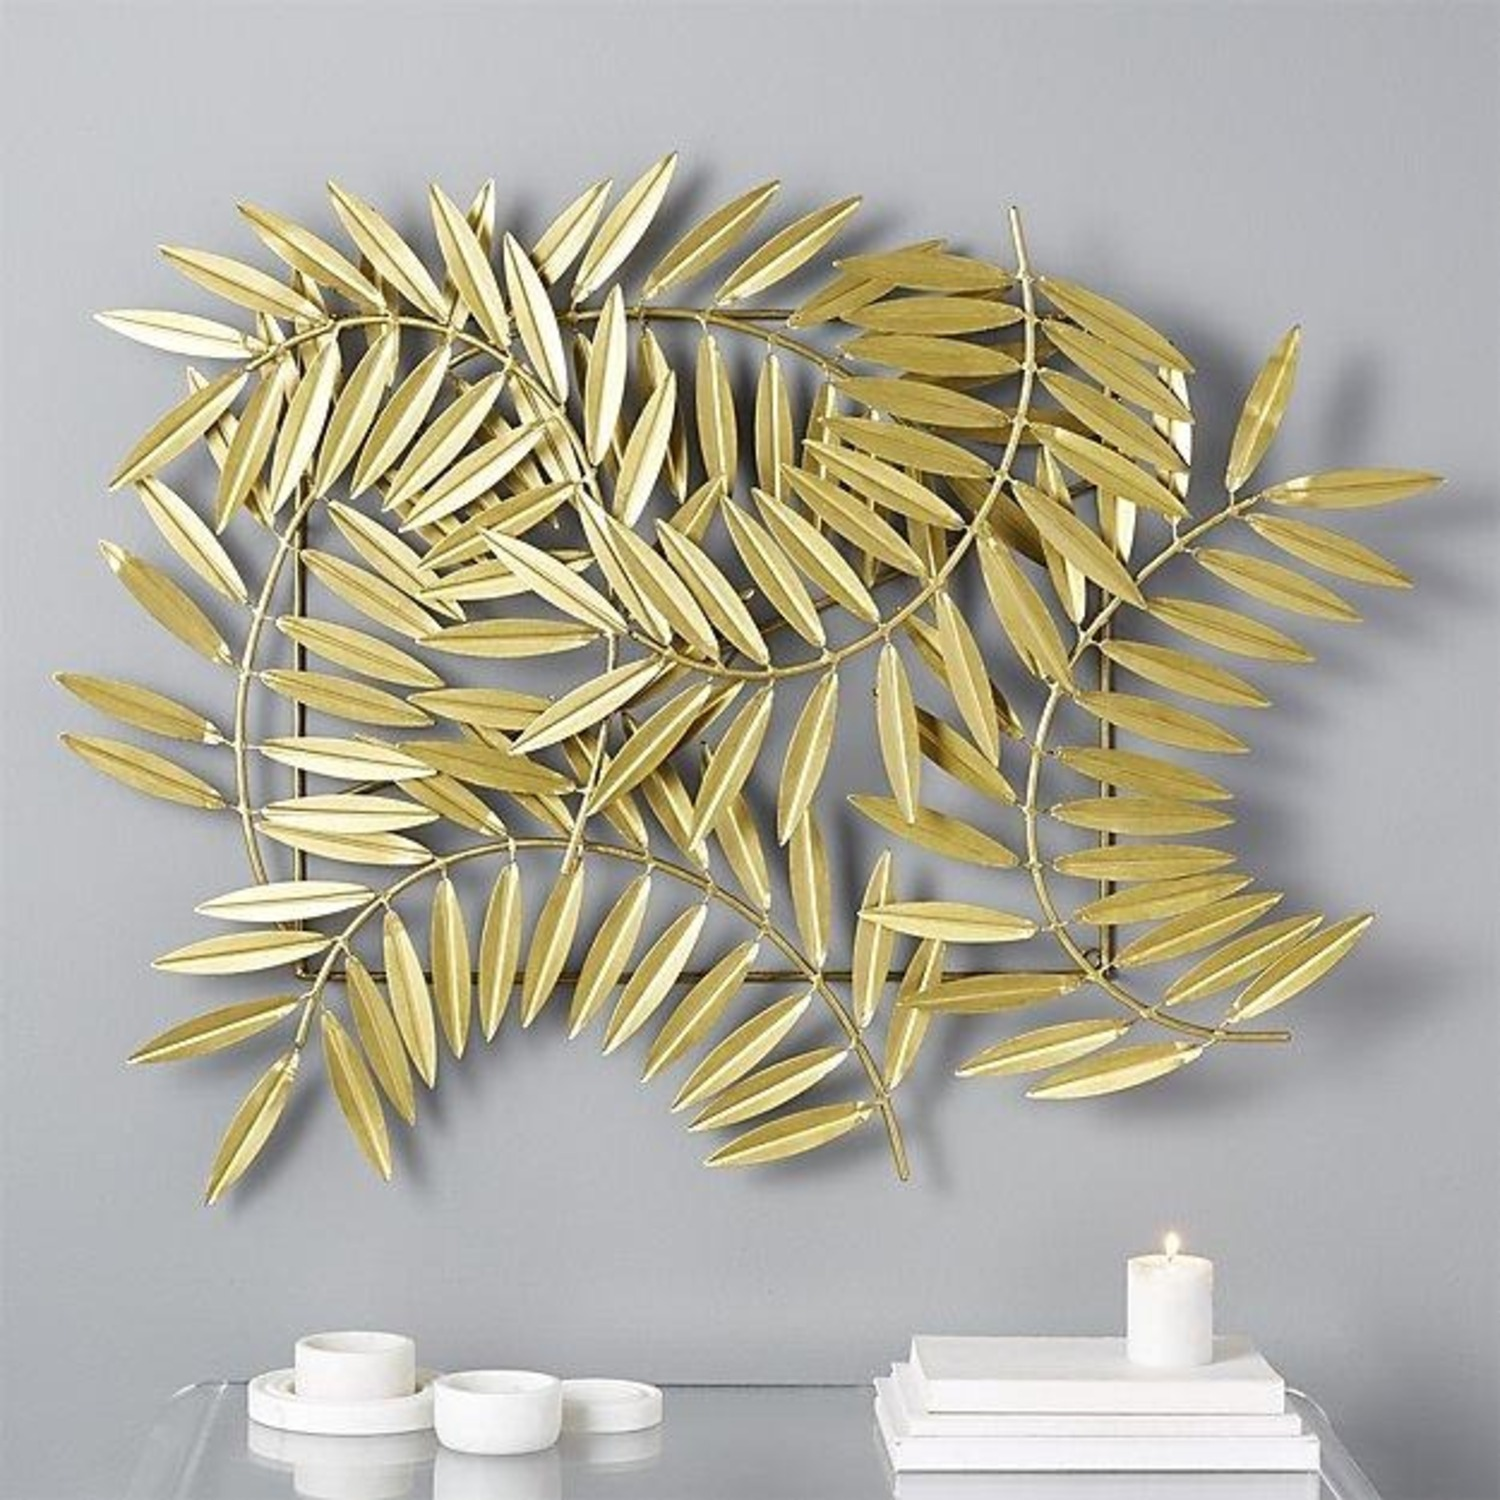 CB2 Ceres Leaves Wall Decor Gold - image-1